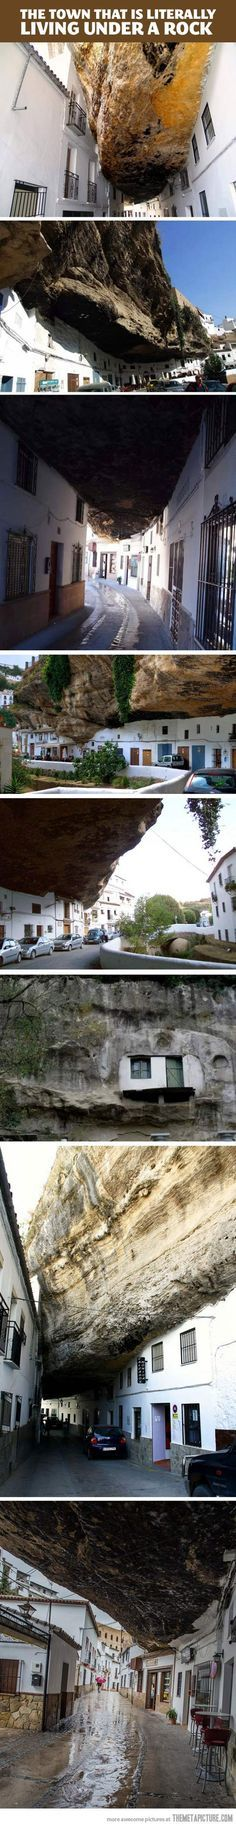 The small town of Setenil de las Bodegas is home to around 3,000 people. The Andalucian town, northeast of Cadiz, Spain, was built along a narrow river gorge eroded by the Rio Trejo river. Many of the houses are built into & under the walls of the gorge itself, a tradition which has dated back to pre-historic times. They can live in the gnarled caves & just construct a façade. It's perfect for blocking the hot & cold temperatures that sweep the country.